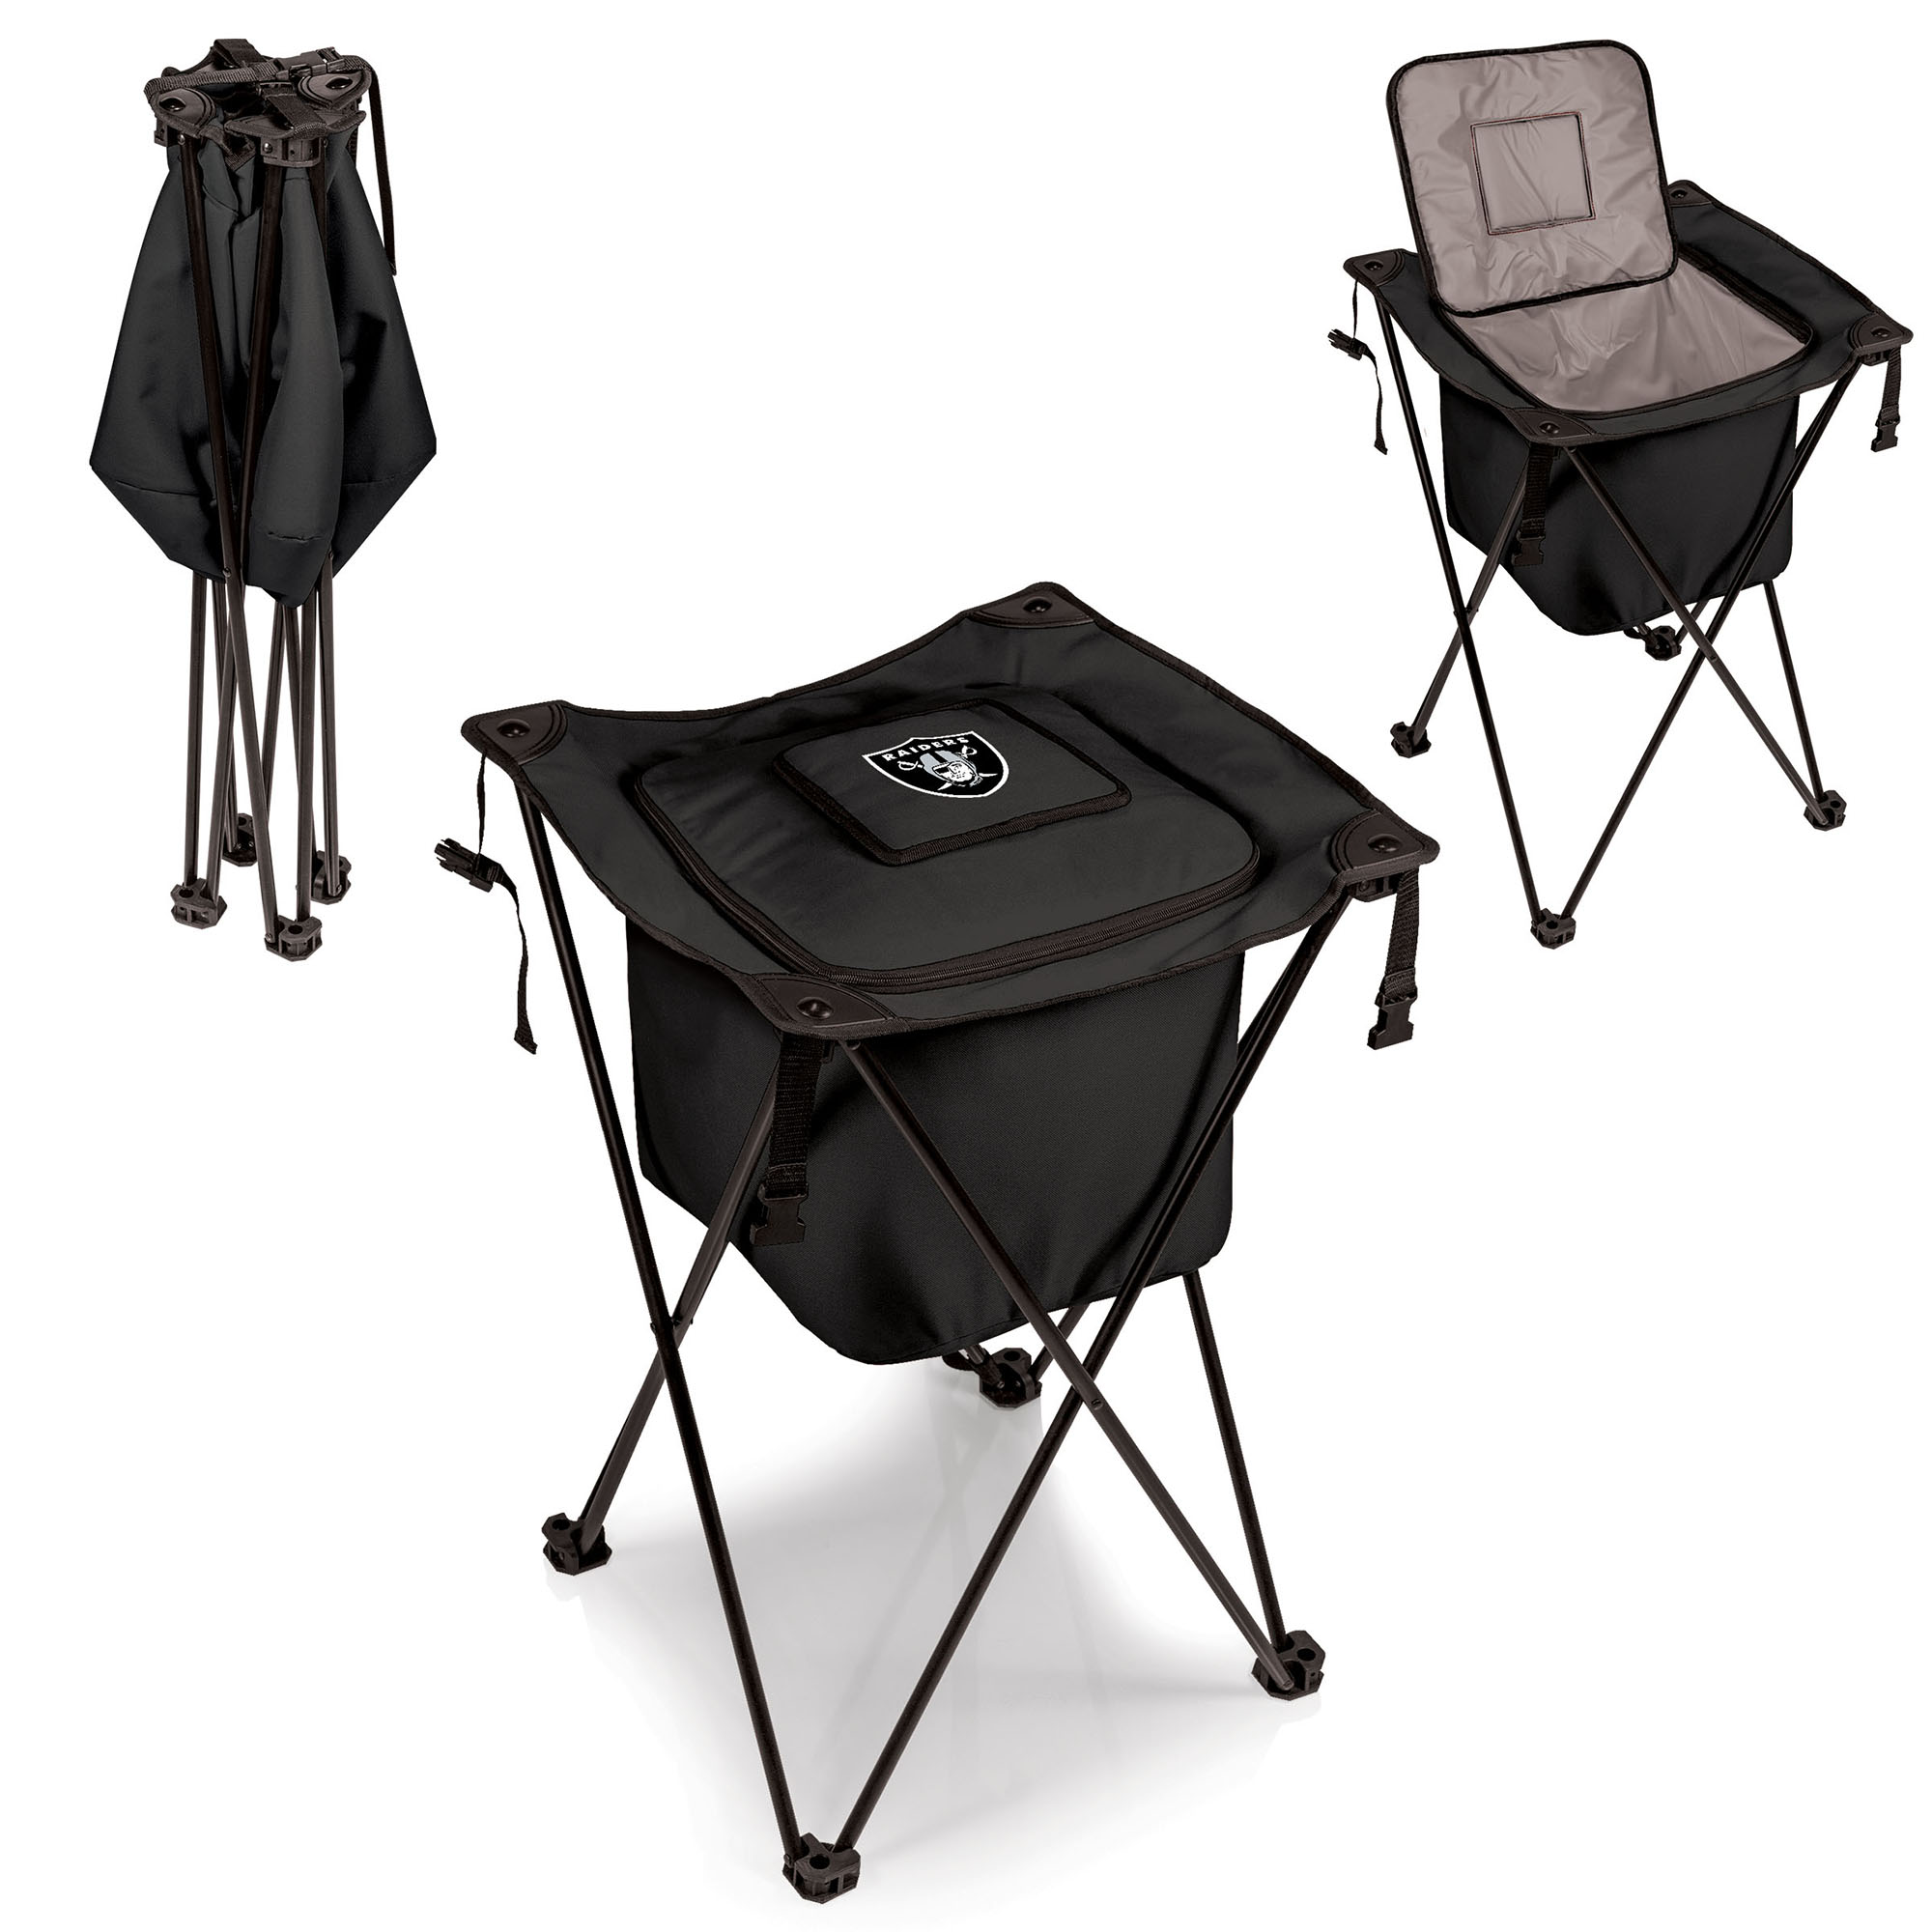 Oakland Raiders Sidekick Cooler - Black - No Size